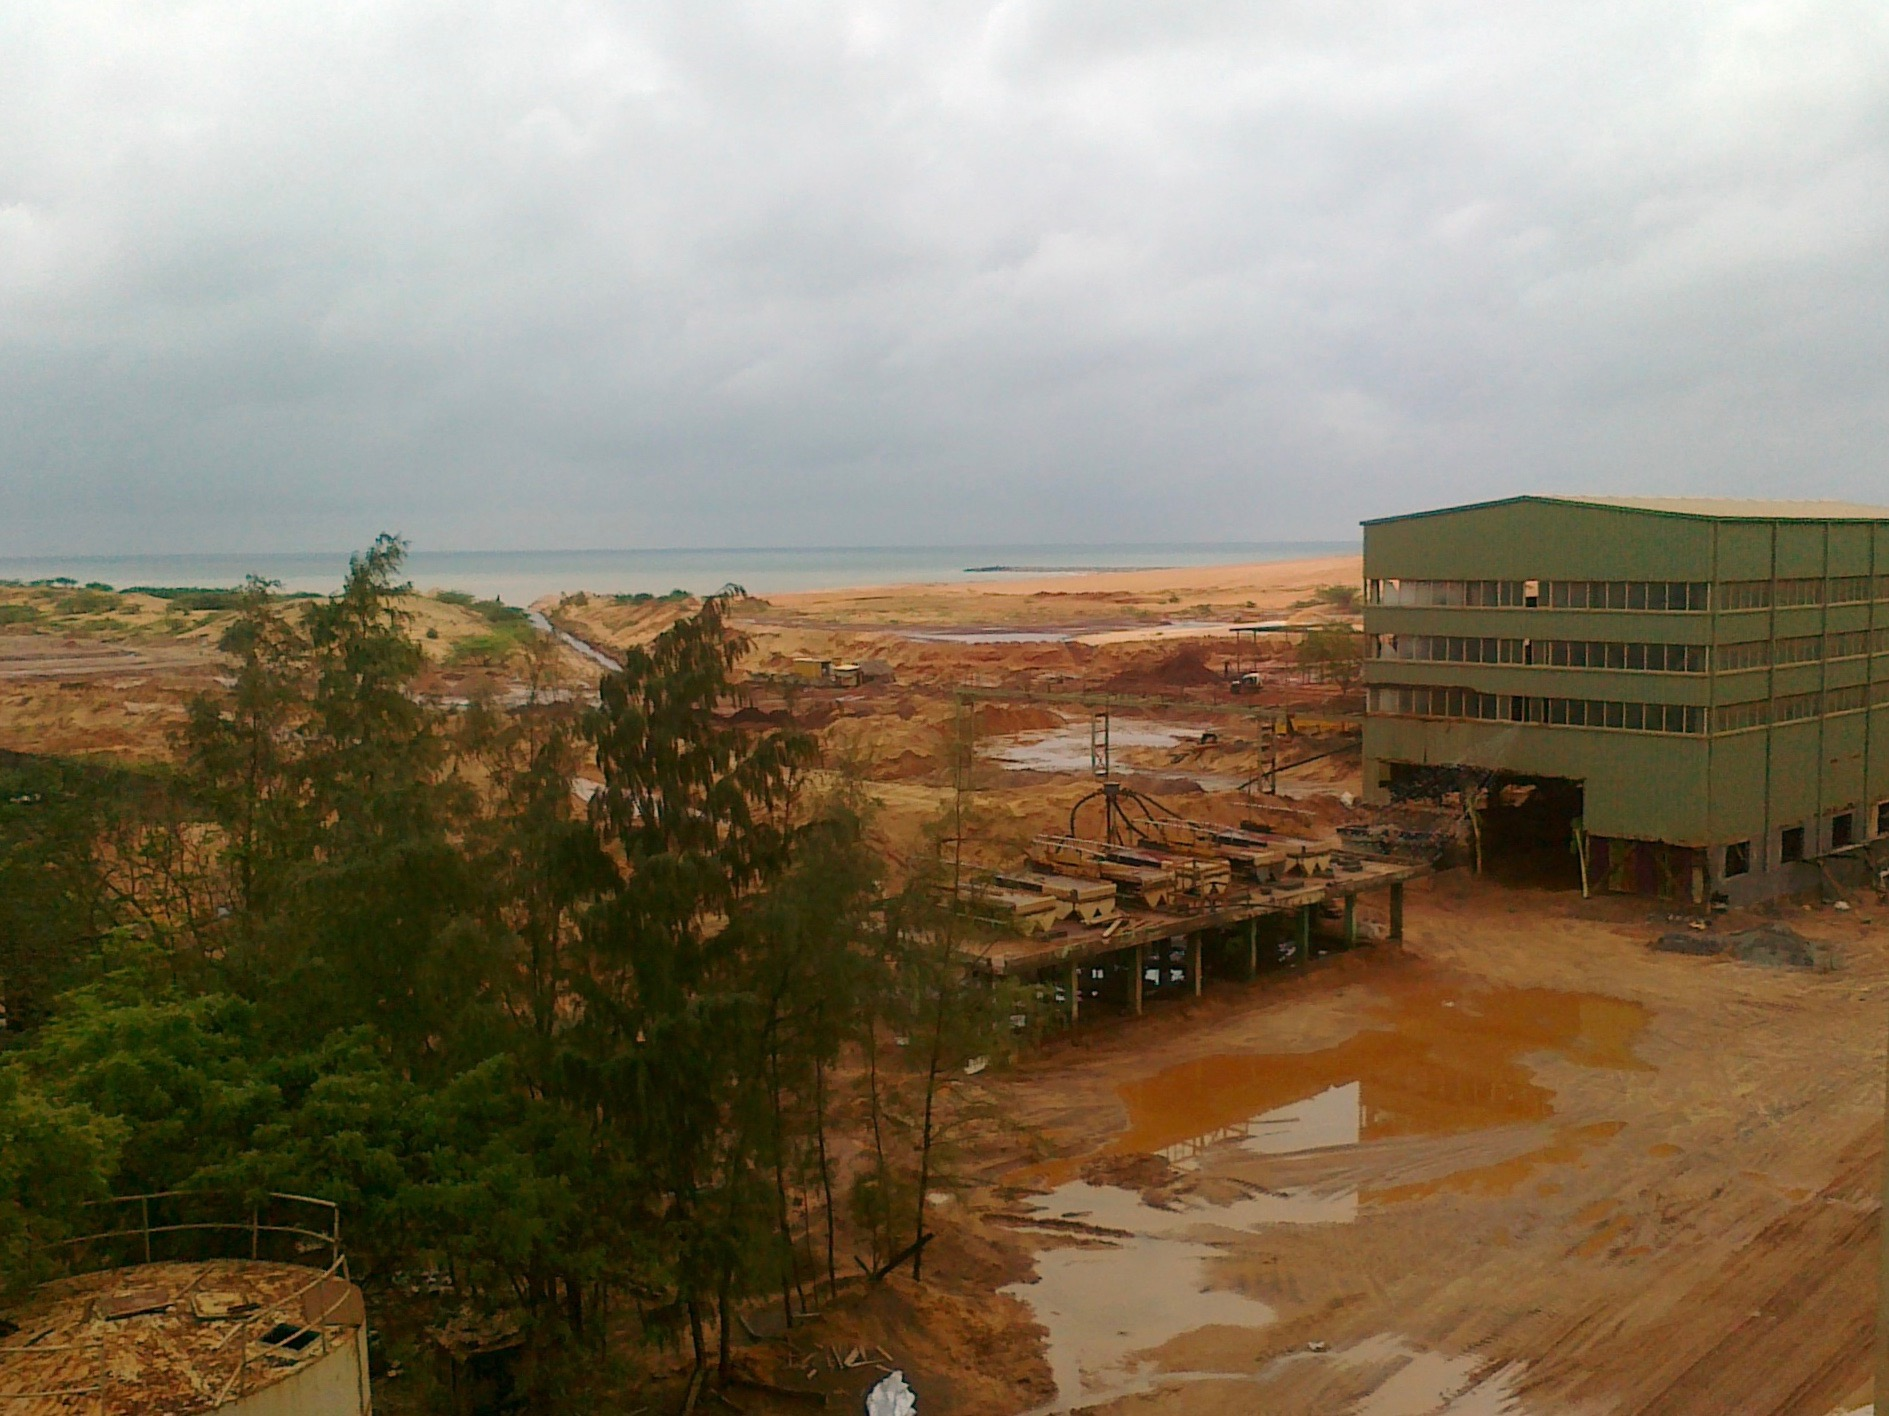 File photo of a beach sand minerals processing unit in Tirunelveli district. Credit: Special Arrangement